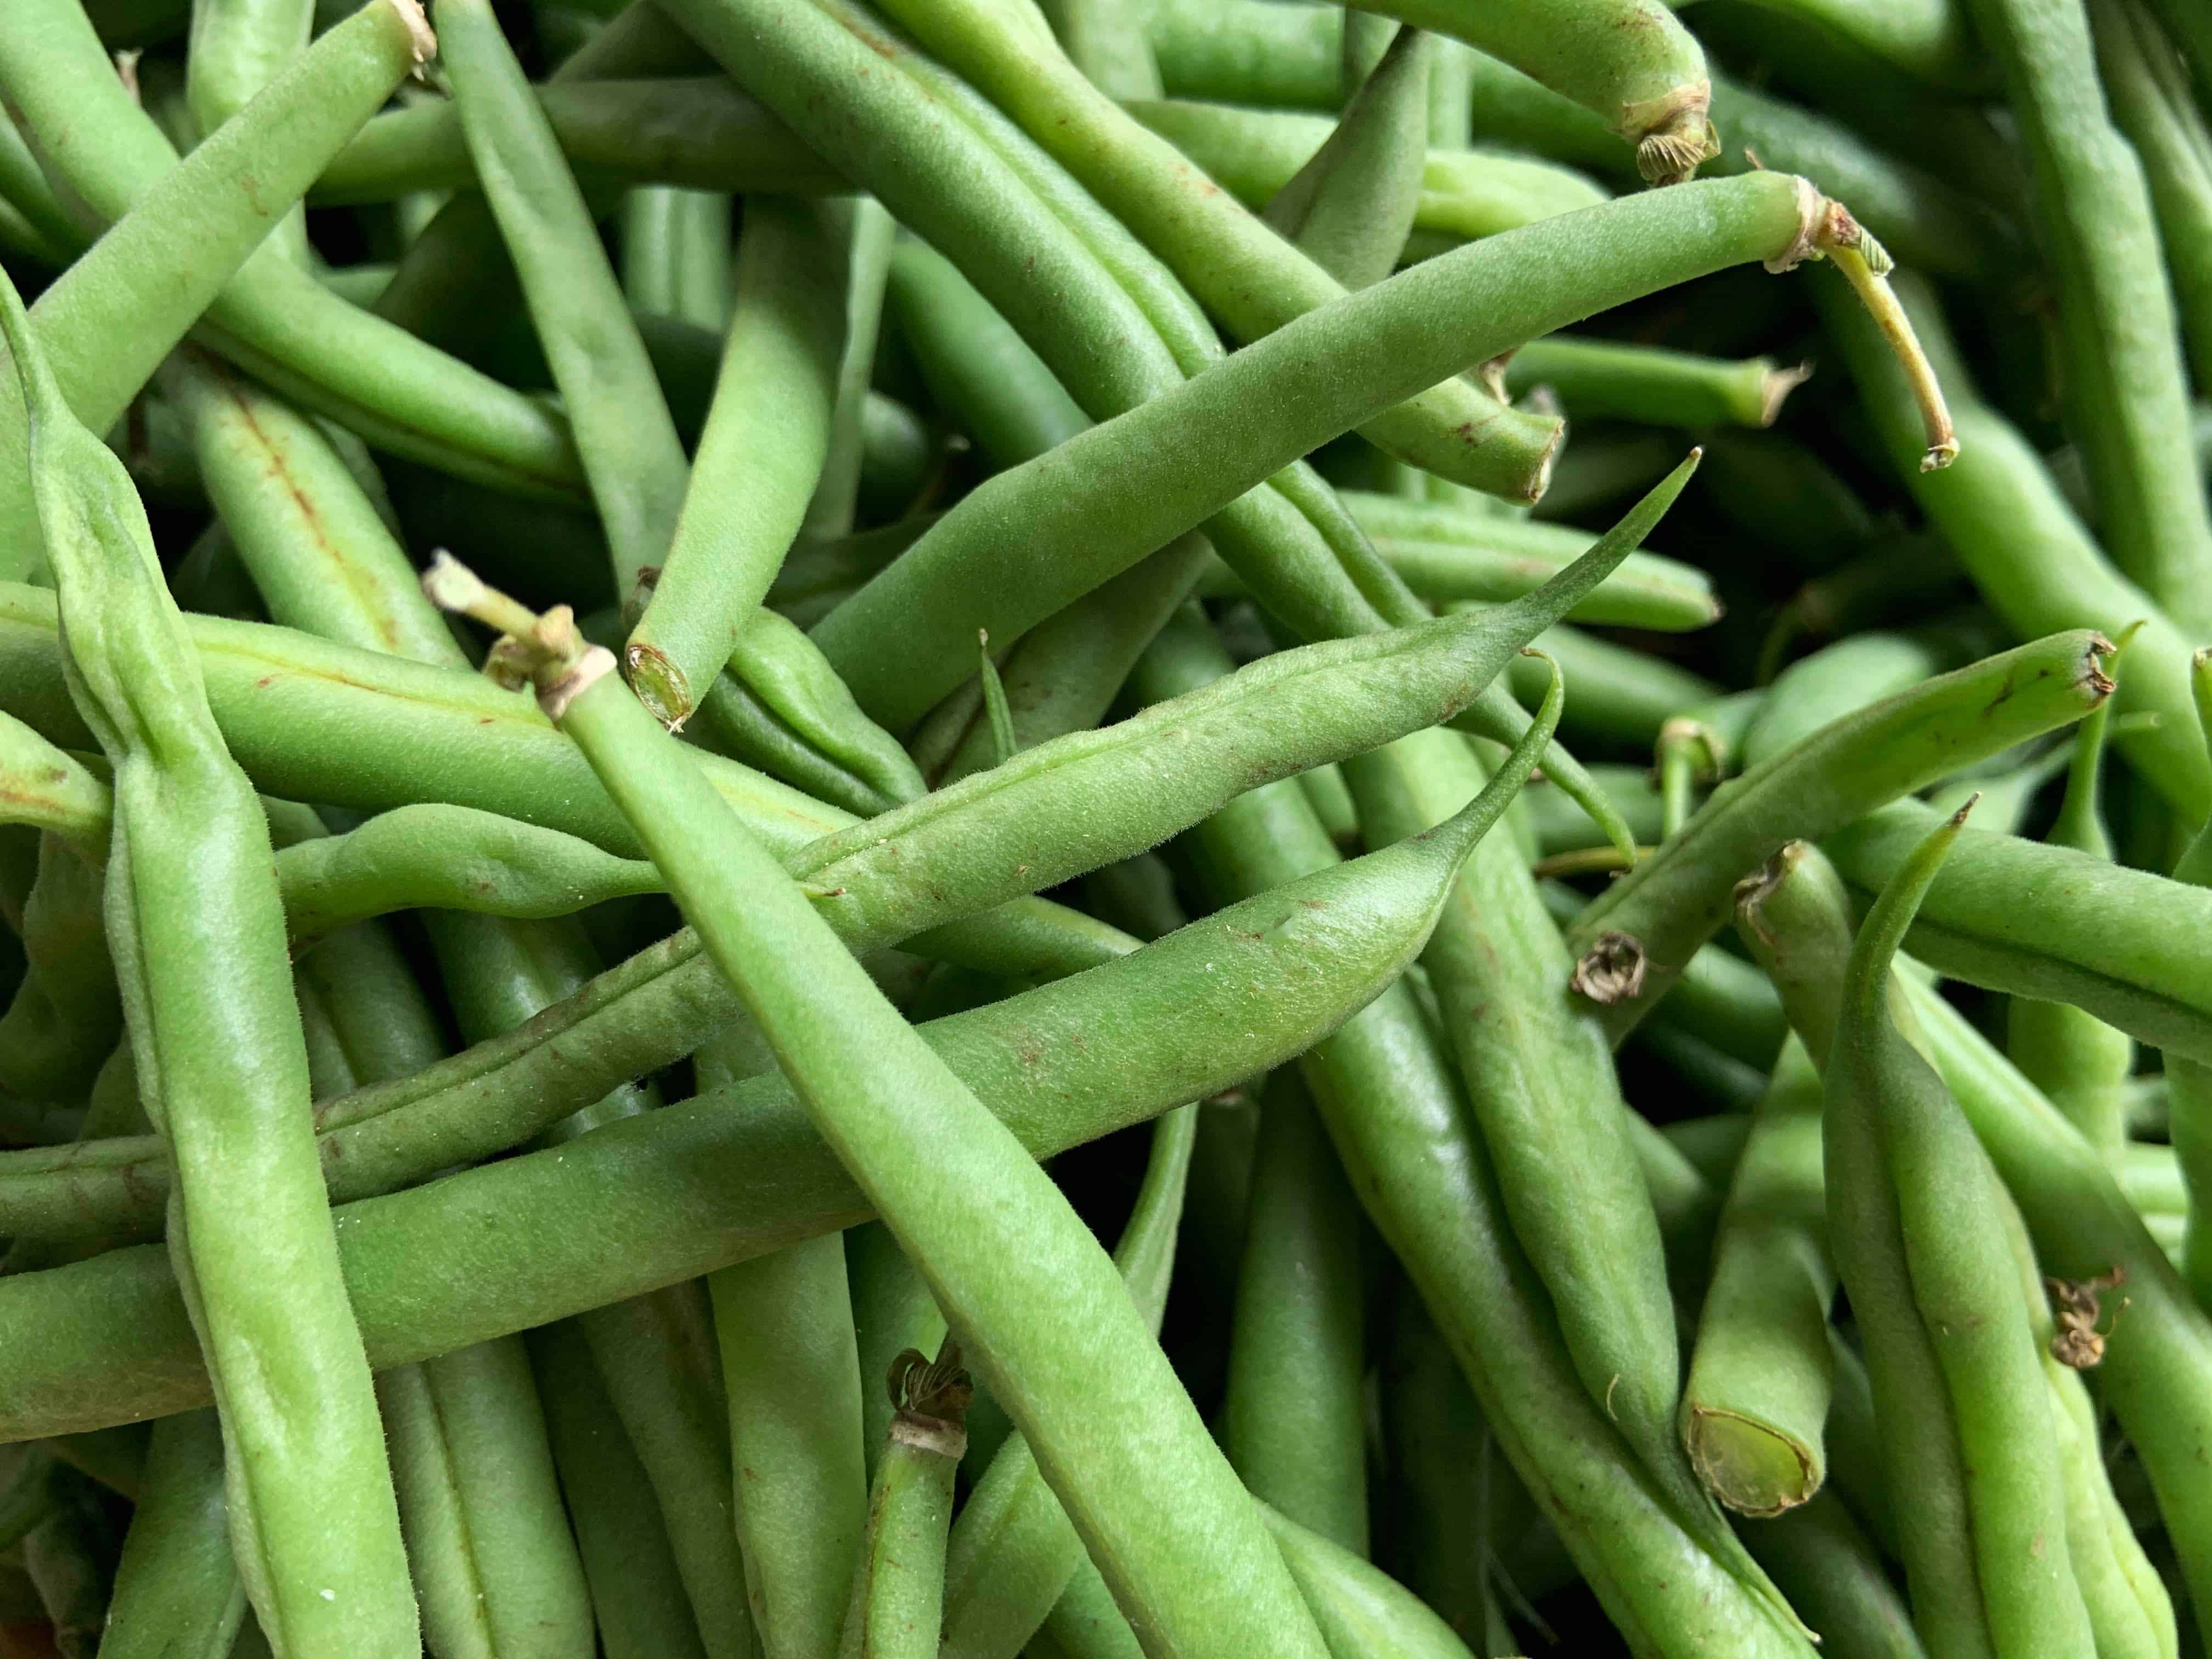 Green beans are productive fast growing vegetables